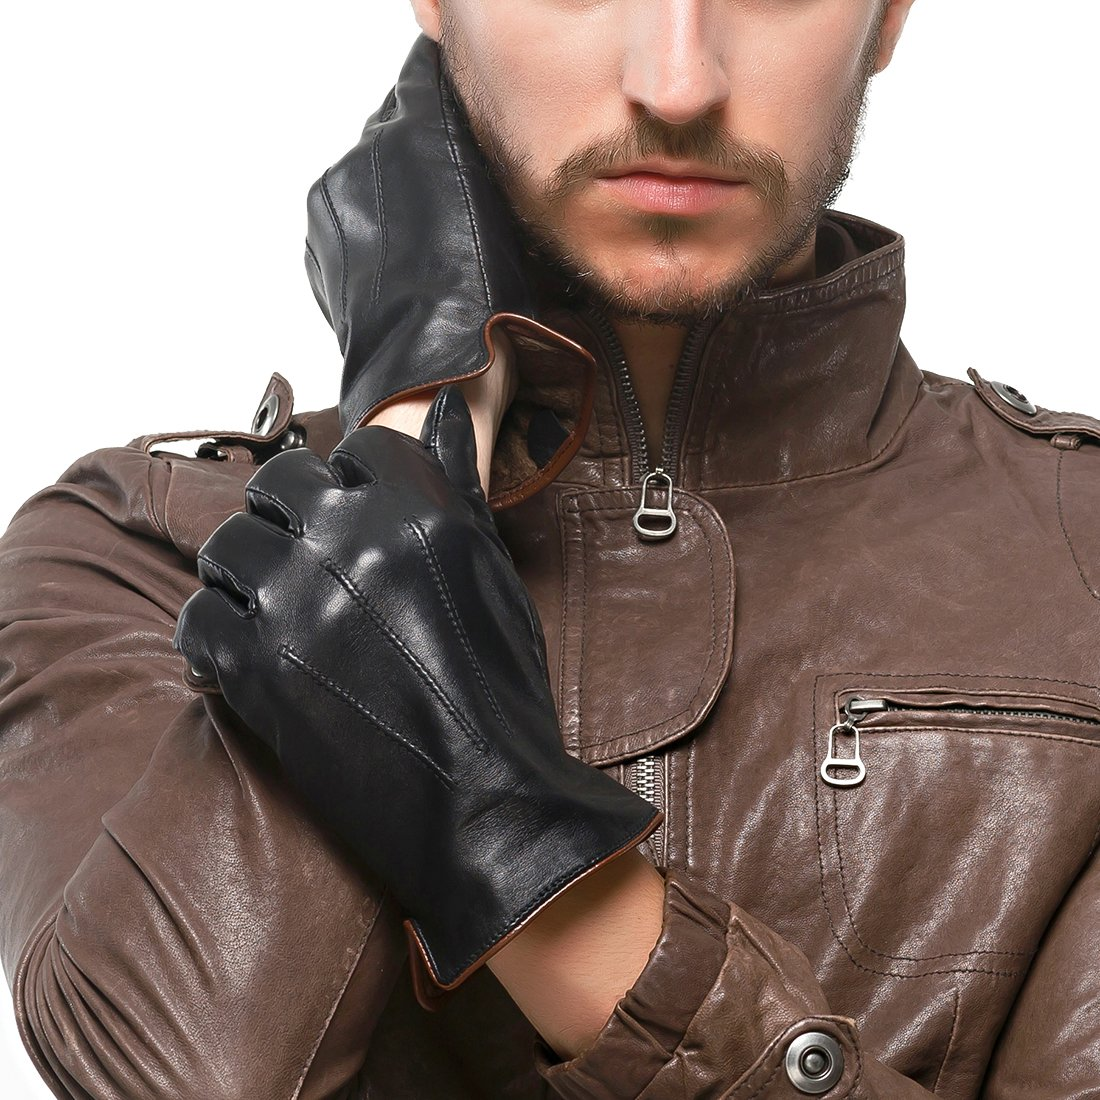 Nappaglo Men's Genuine Touchscreen Nappa Leather Gloves Driving Winter Warm Mittens (M (Palm Girth:8''-8.5''), Black (Touchscreen))